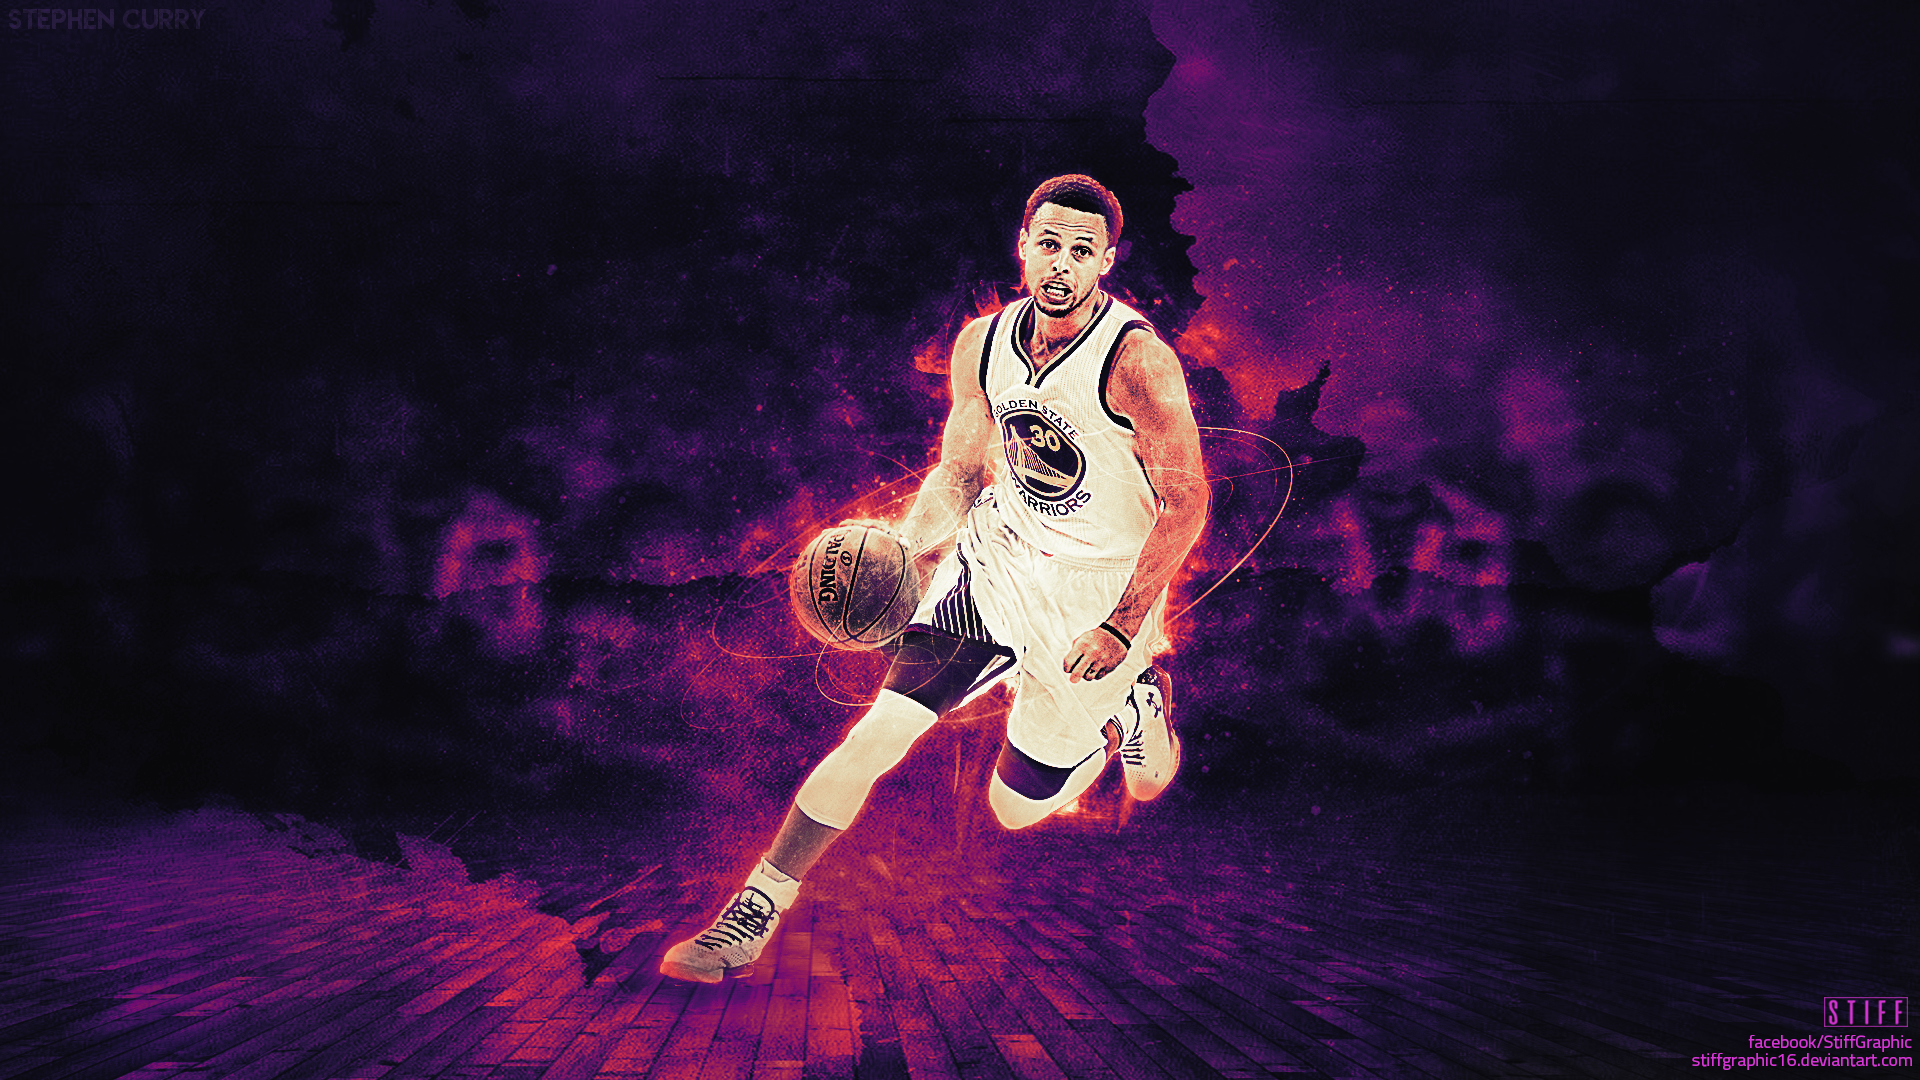 Stephen Curry Wallpaper by stiffgraphic16 1920x1080